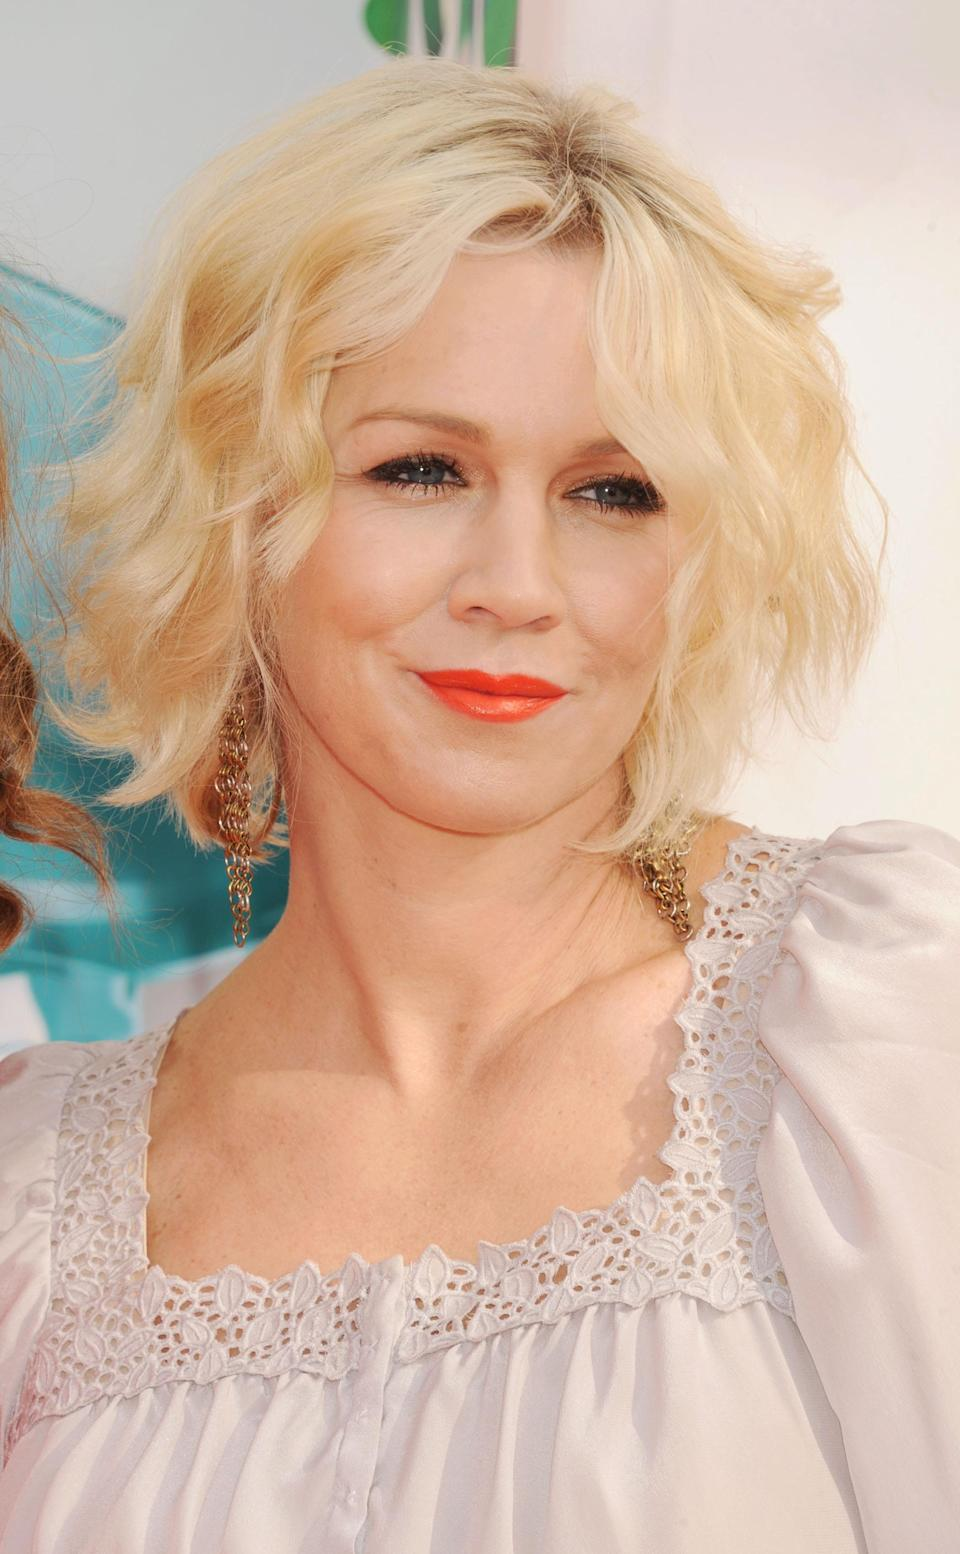 """<div class=""""caption-credit""""> Photo by: (Photo by Jeffrey Mayer/WireImage)</div>In a 2008 <i>People</i> profile, Jennie Garth admitted to using Botox """"in the slightest amount,"""" adding, """"I don't want my face to change."""""""